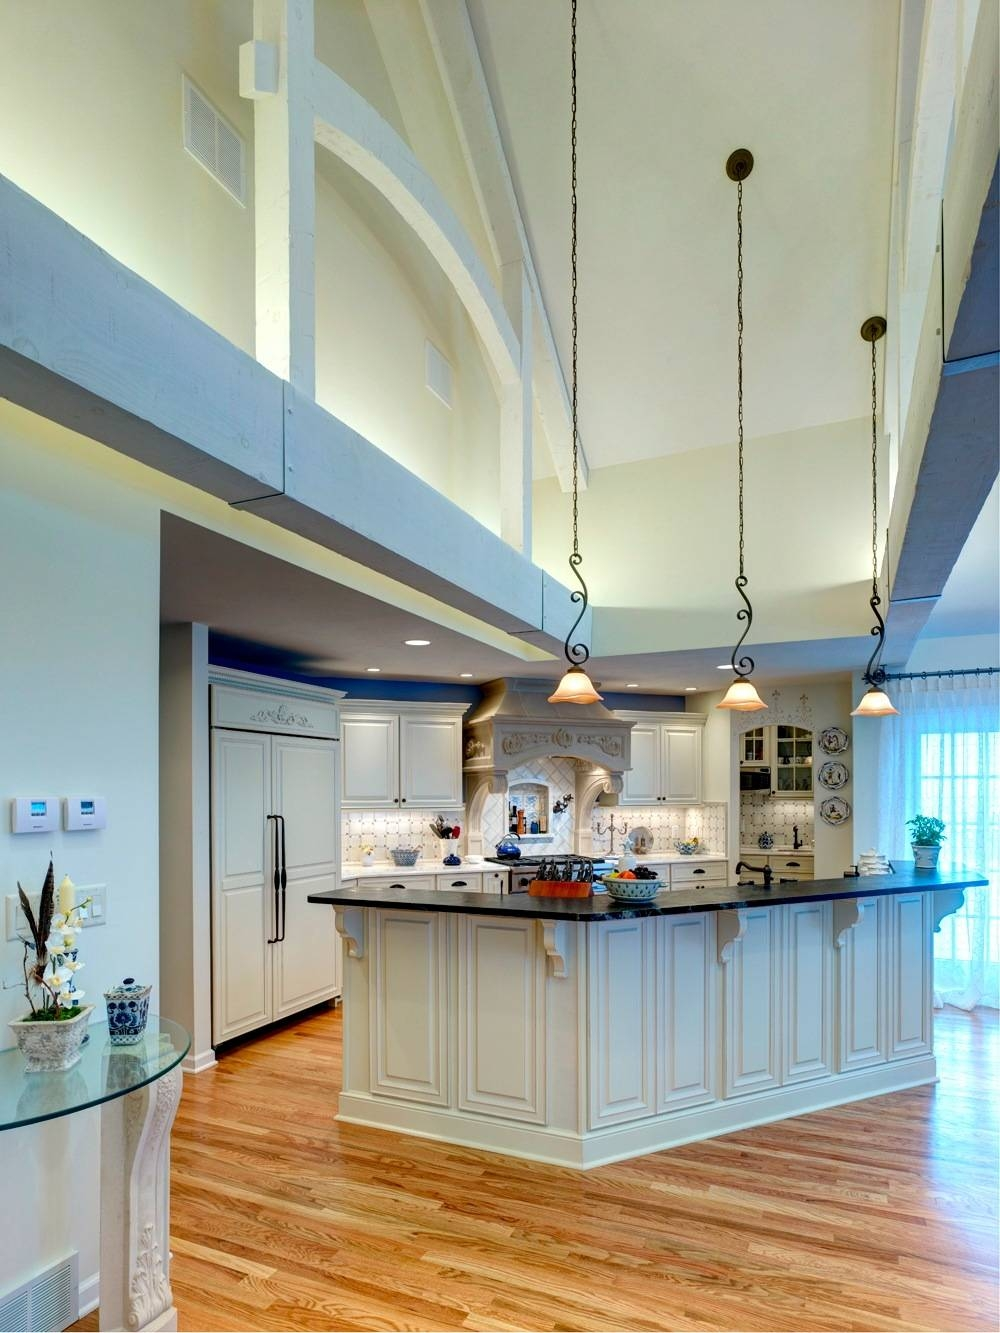 Kitchen Lighting Vaulted Ceiling - Kutsko Kitchen in Vaulted Ceiling Pendant Lights (Image 8 of 15)